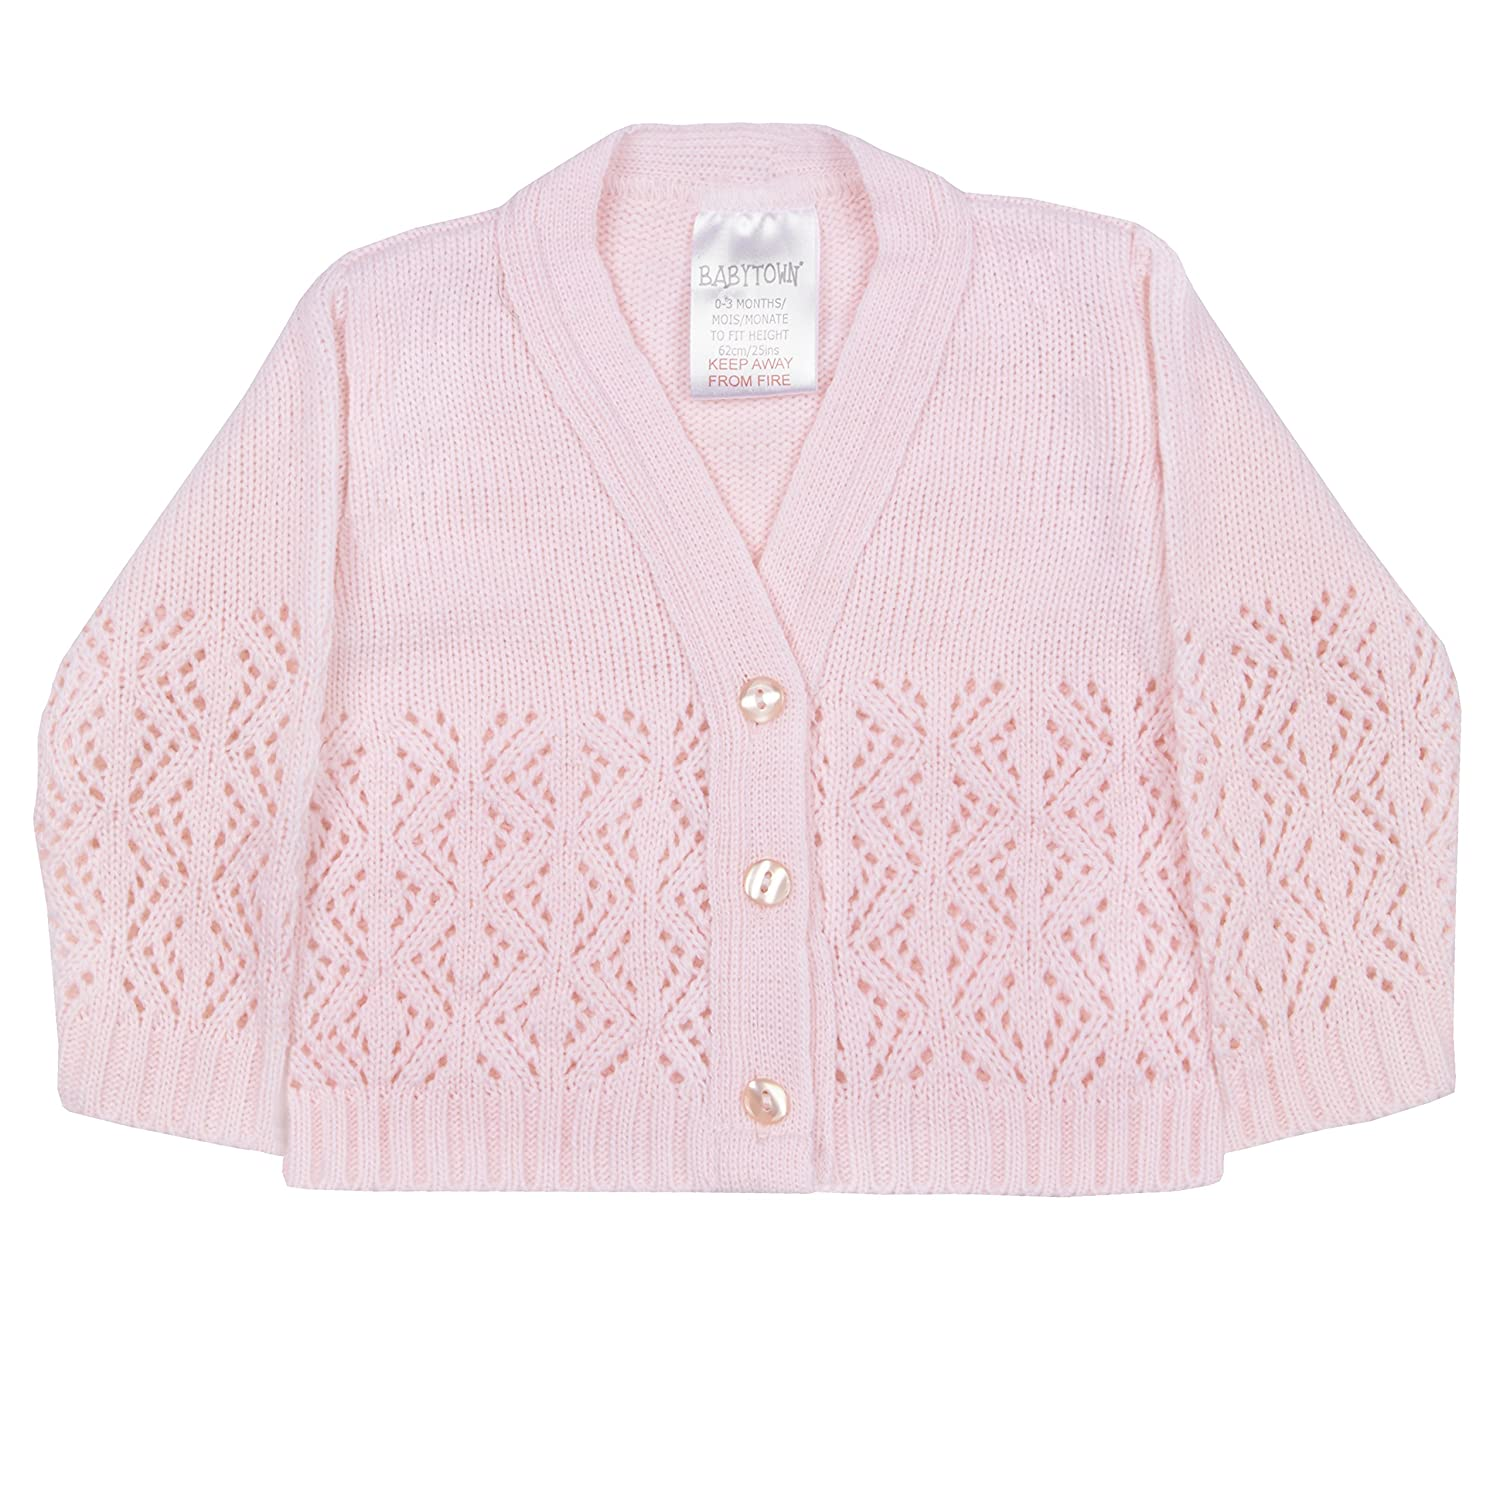 BABY TOWN Baby Girls Pink/White Knitted Lace Knit Button up Cardigans 0-6 Months BabyTown